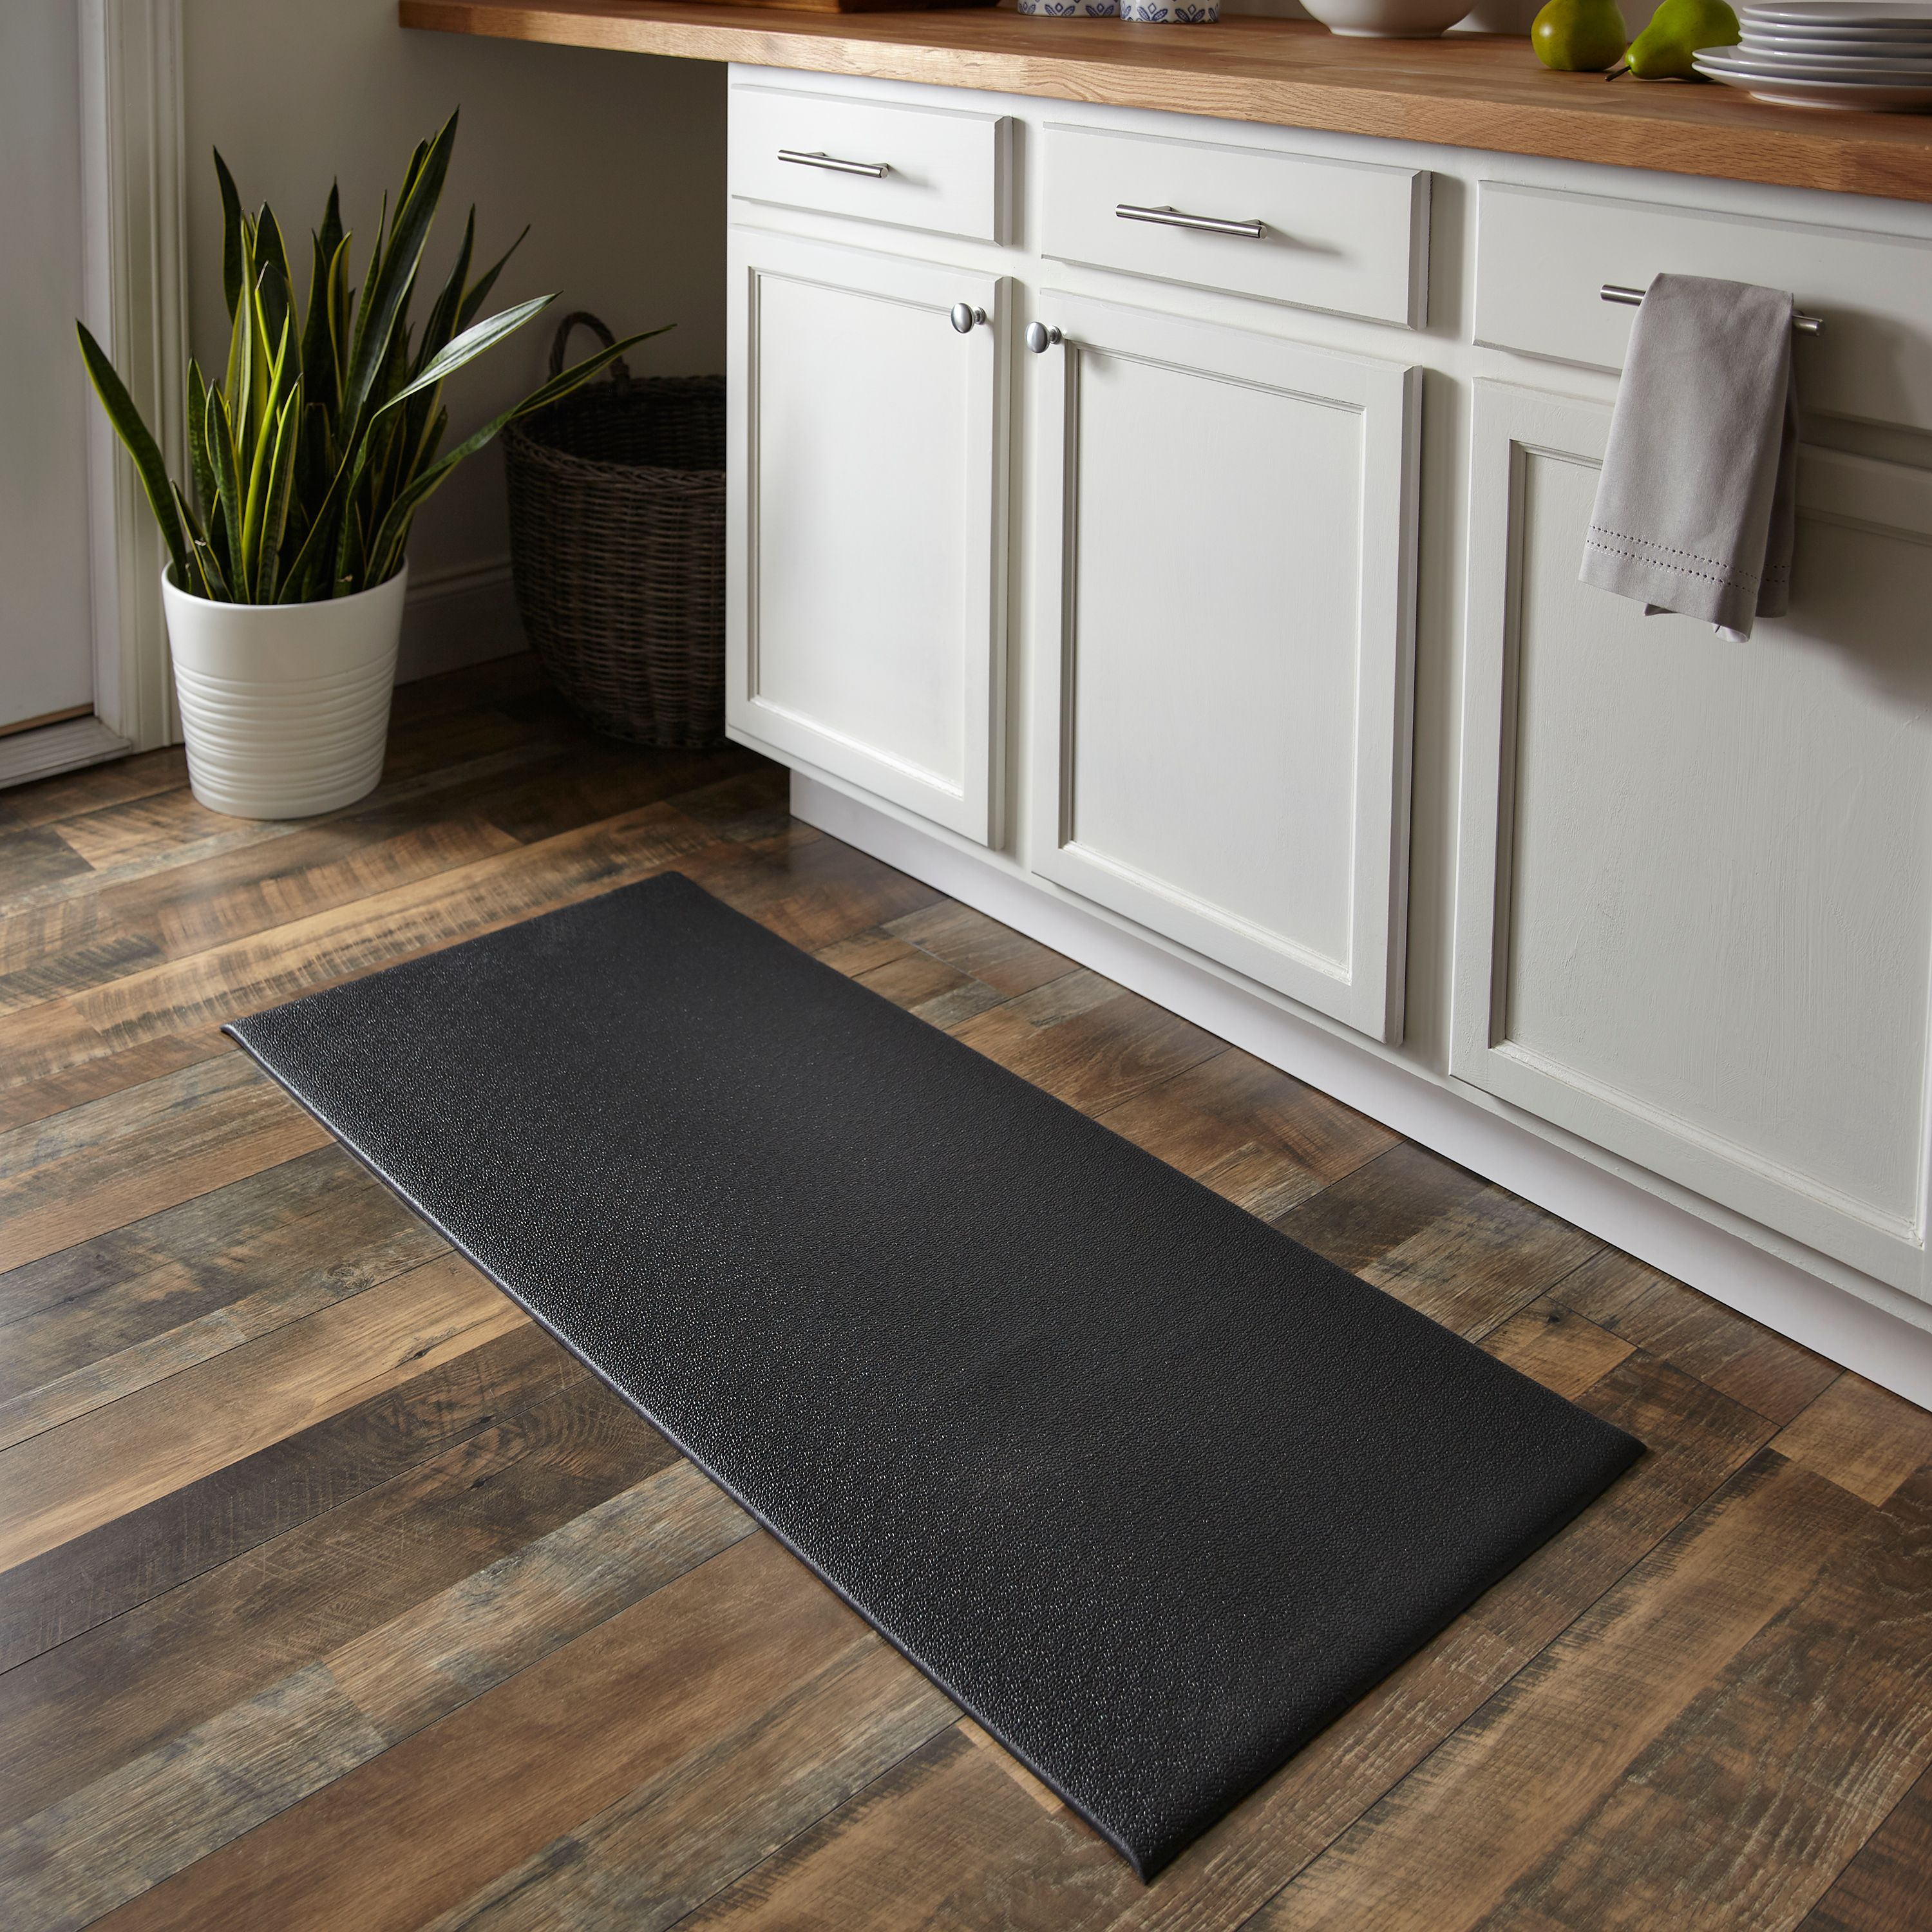 5 Kitchen Comfort Mats To Make Cleaning Dishes Easier